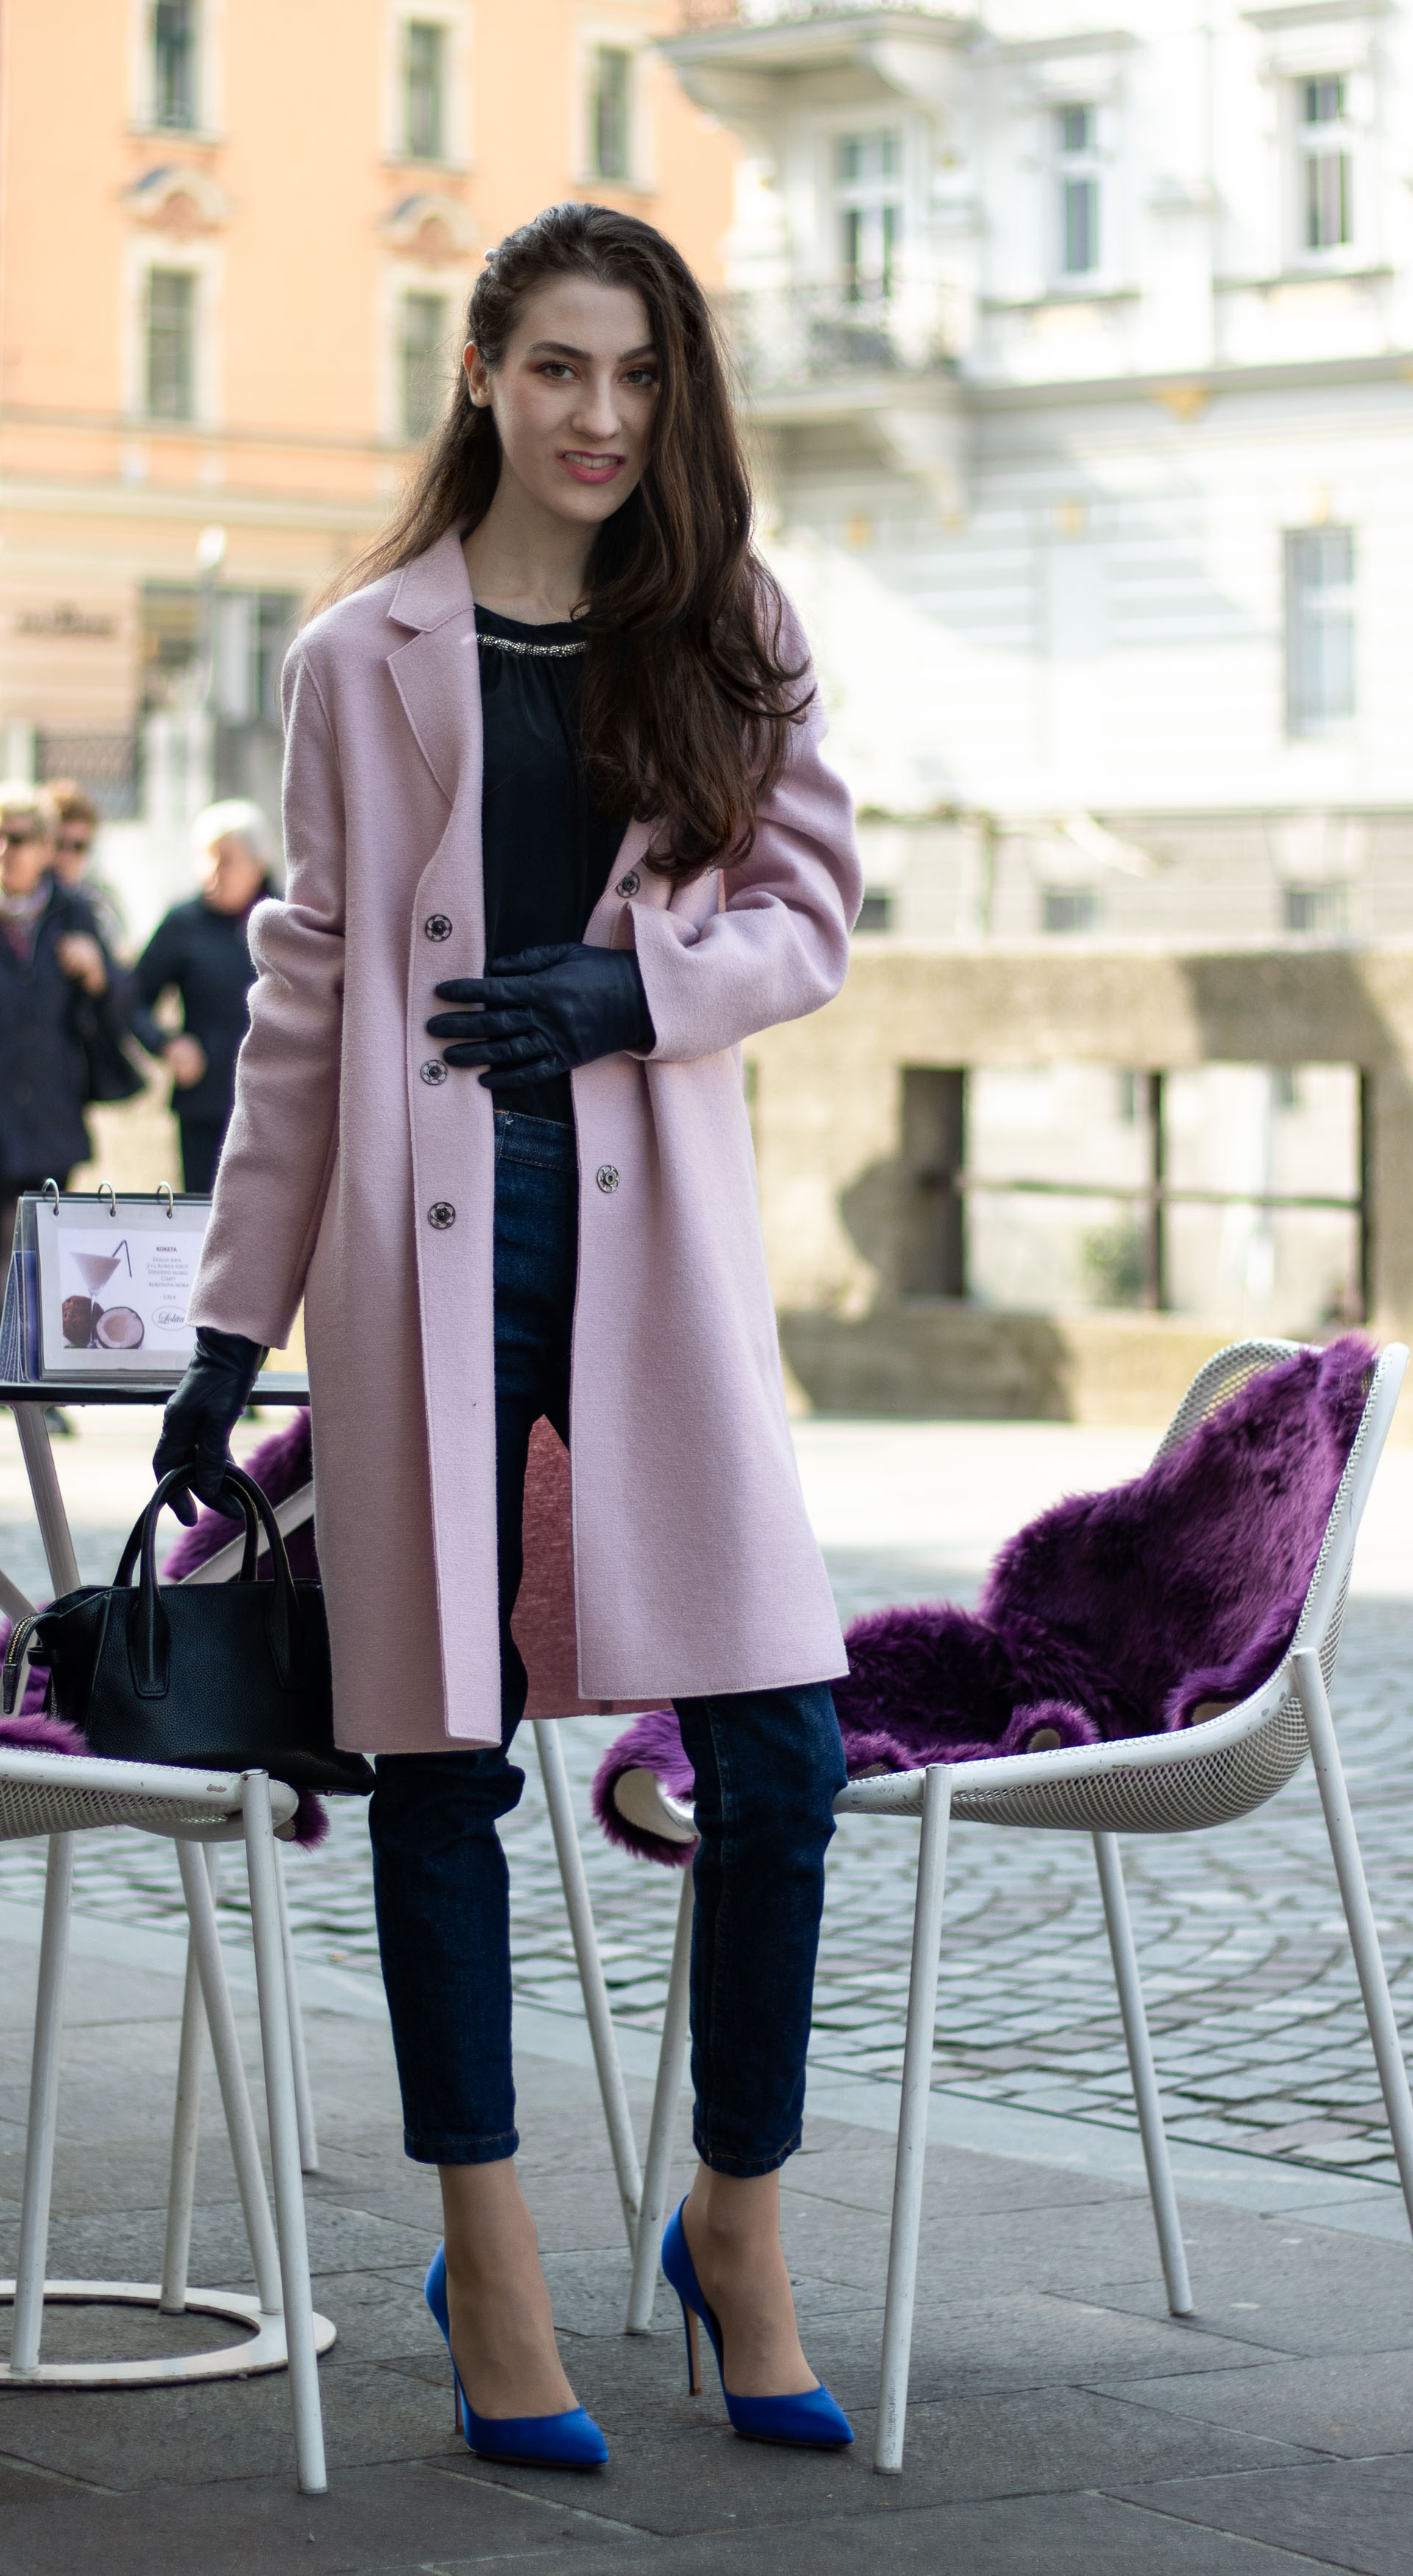 Must follow Fashion Blogger Veronika Lipar of Brunette from Wall Street wearing oversize pink Harris Wharf London coat A.P.C. Paris dark blue denim jeans Gianvito Rossi blue heels black top handle bag Forzieri blue leather gloves pearl hairpin standing by the table on the street